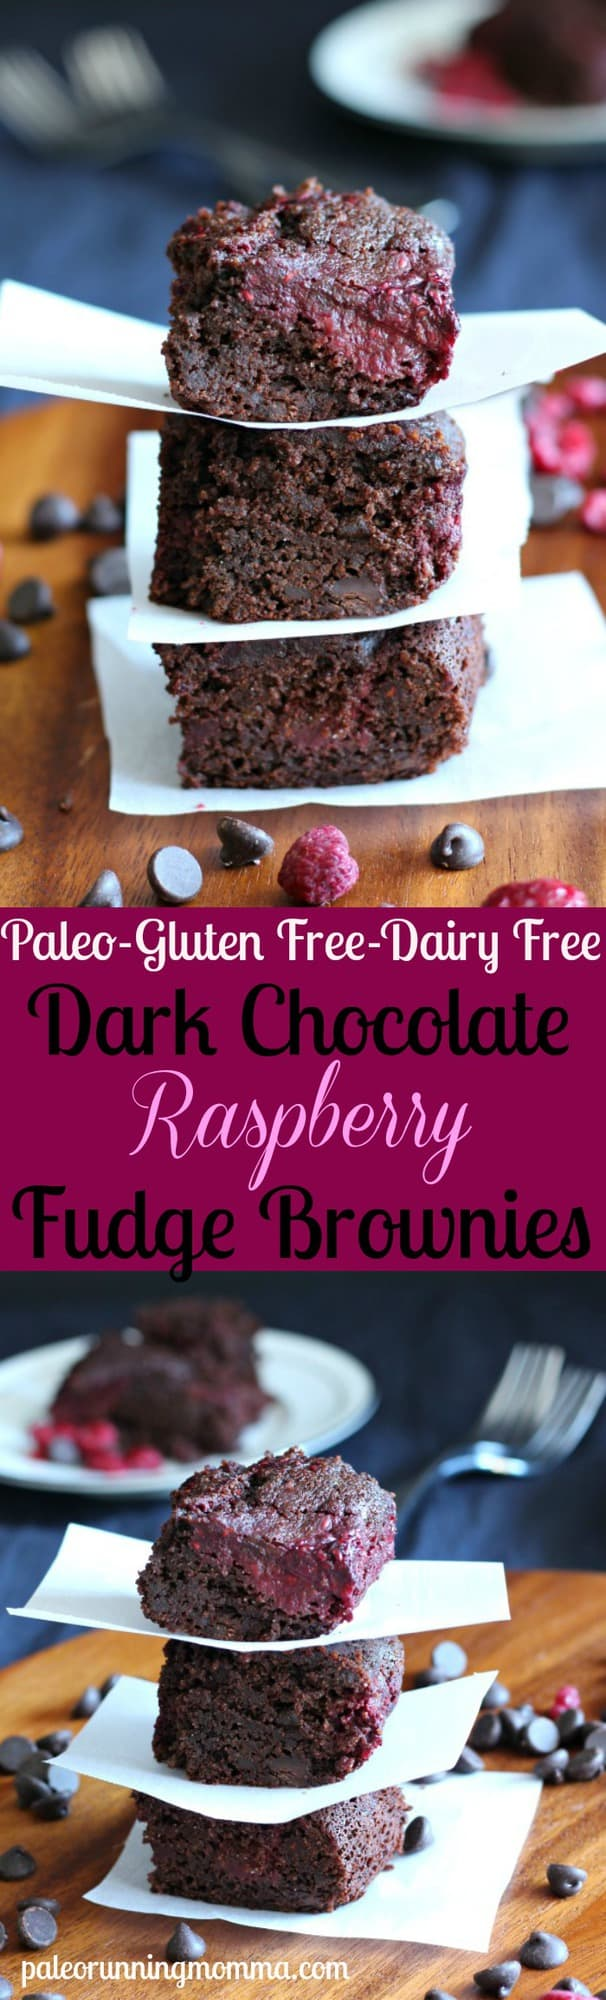 Dark Chocolate Raspberry Fudge Brownies - #paleo brownies with an easy homemade raspberry swirl #glutenfree #dairyfree #grainfree